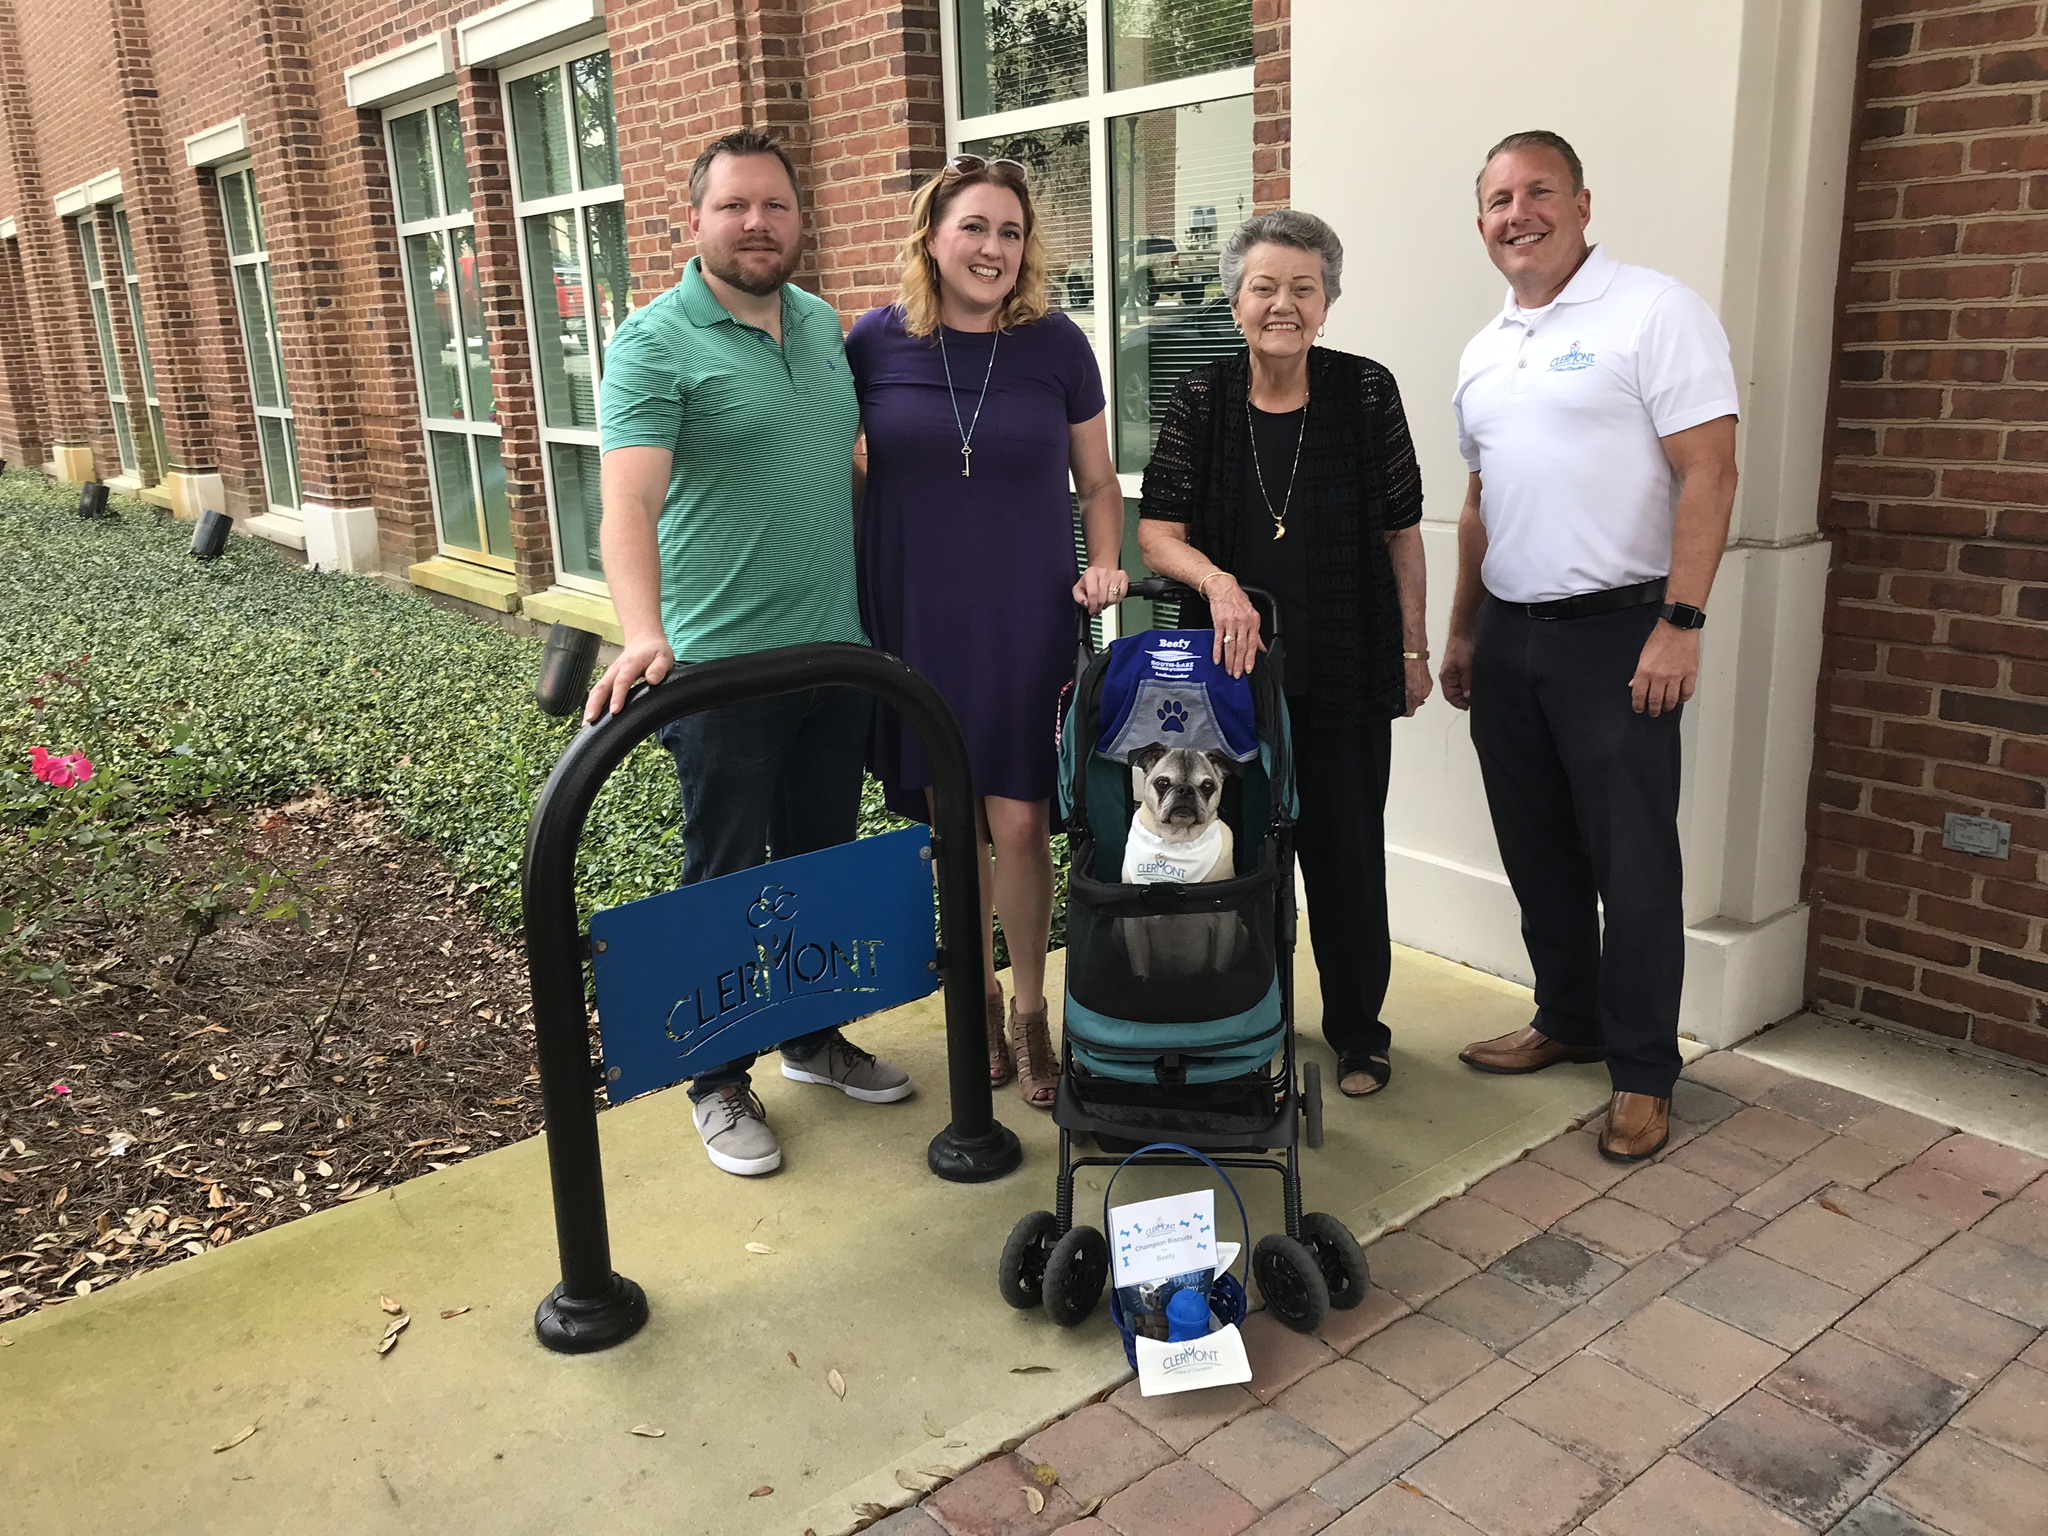 Beefy's owners, left, and Clermont's mayor and city manager stand in front of City Hall with Beefy in the center in his stroller.